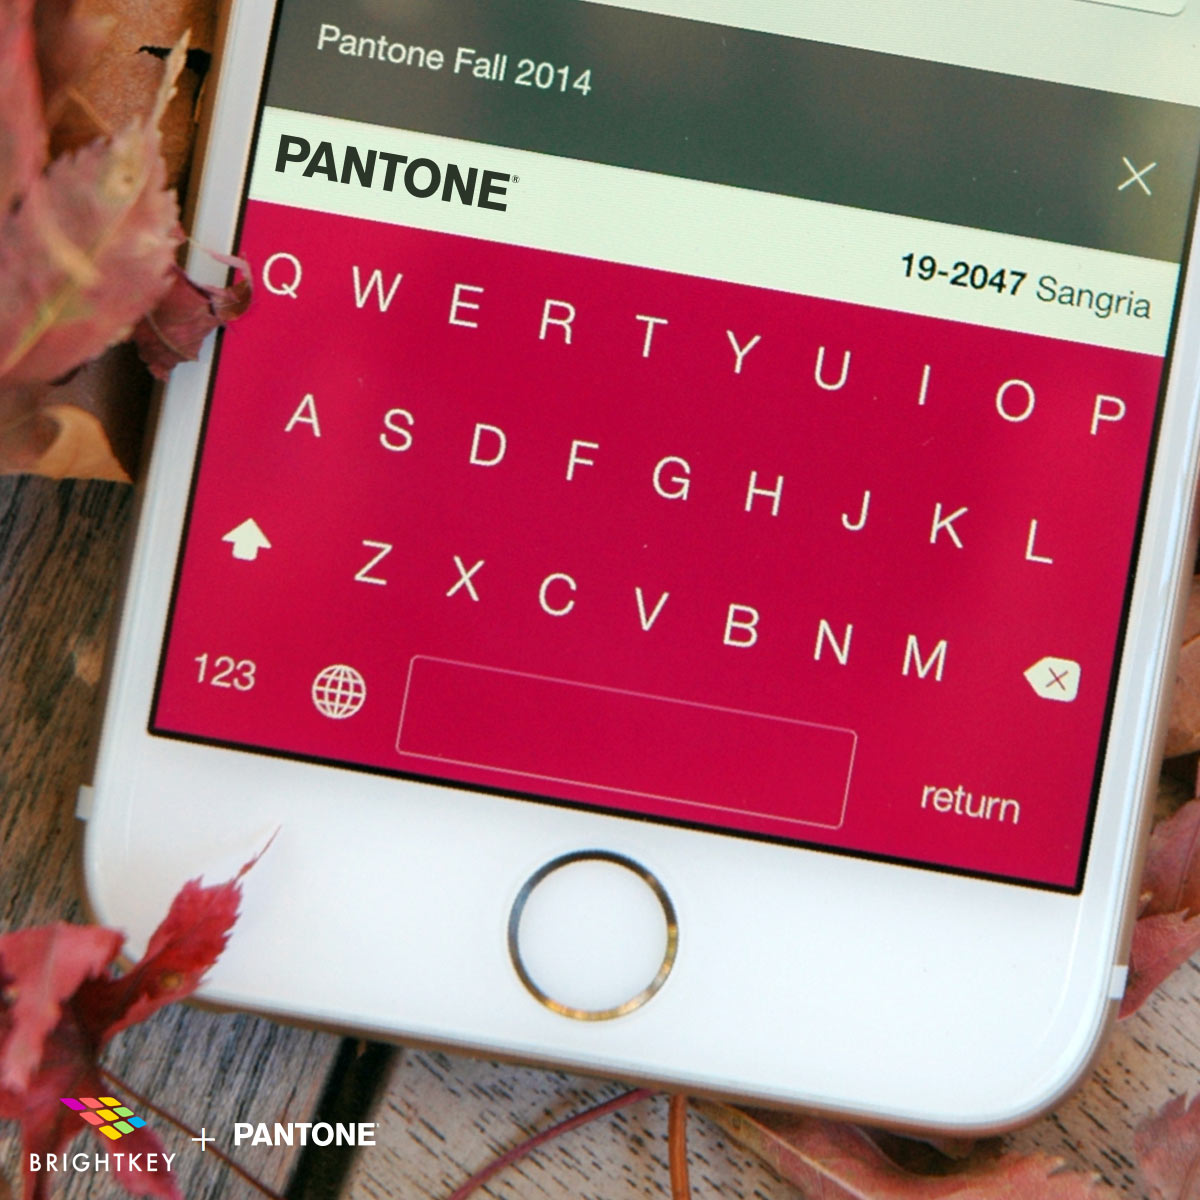 Brightkey + Pantone Bring Colorful Keyboards to iOS Devices